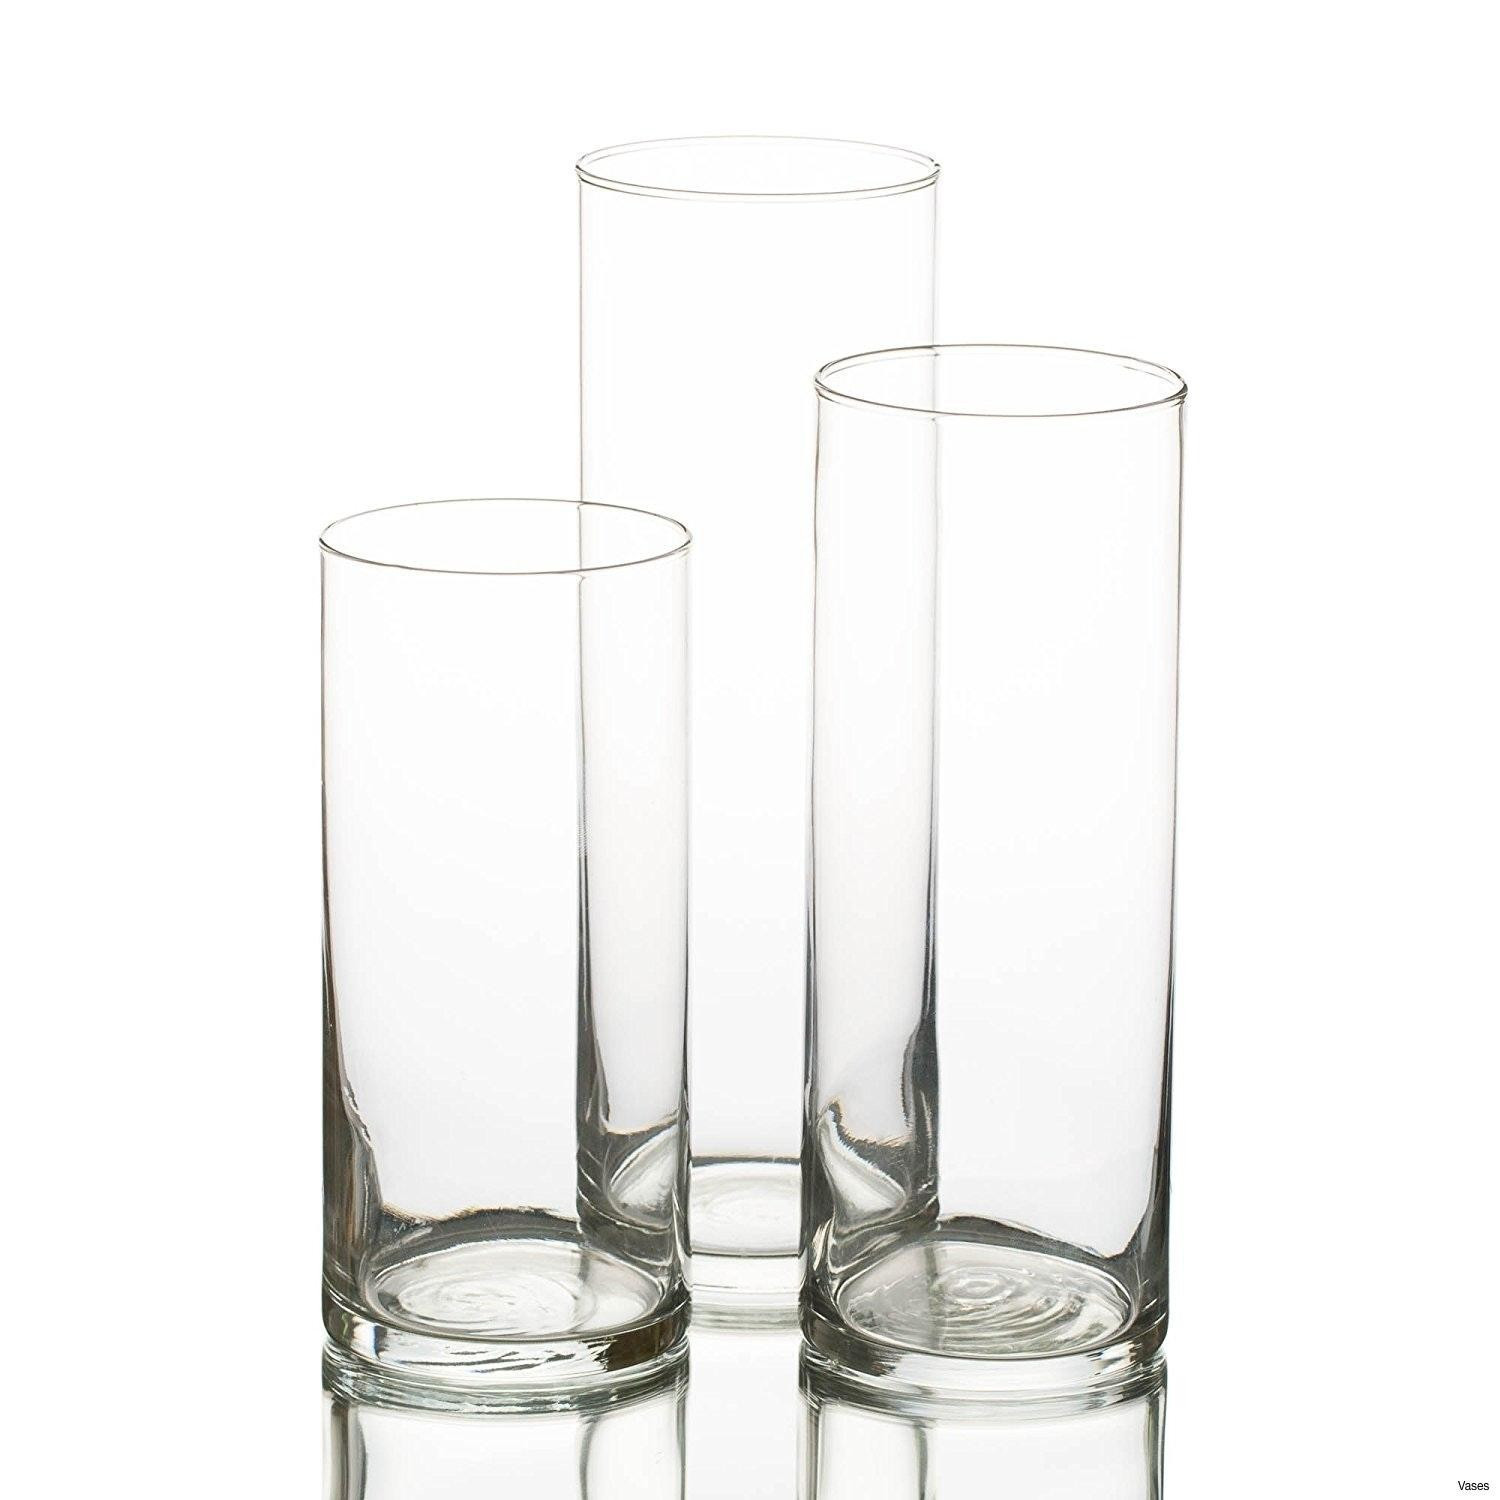 Clear Plastic Cylinder Vases wholesale Of Plastic Cylinder Vase Image Vases Disposable Plastic Single Cheap for Plastic Cylinder Vase Pics Outdoor Dining Table Of Plastic Cylinder Vase Image Vases Disposable Plastic Single